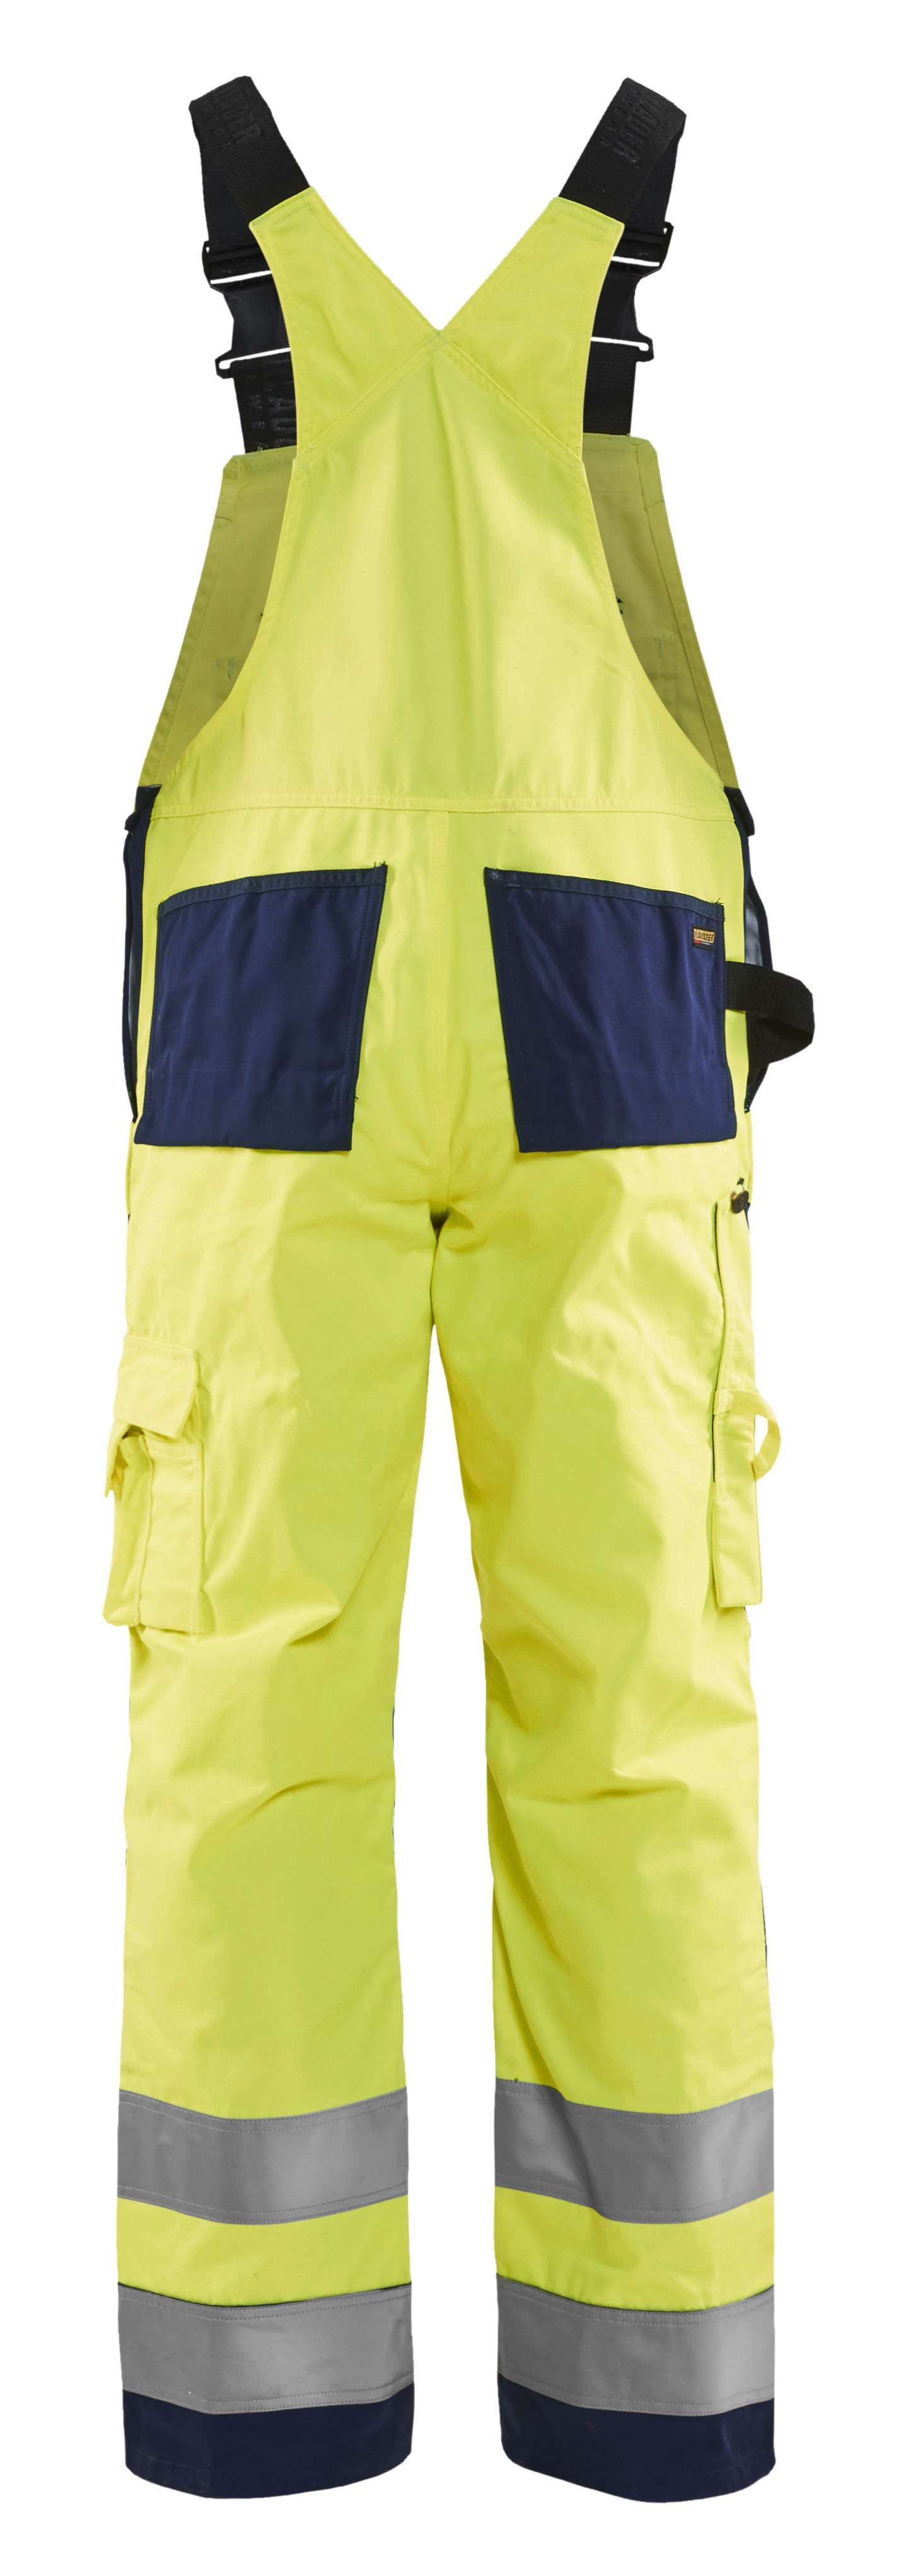 Blaklader Am. Overalls 26601804 High Vis geel-marineblauw(3389)